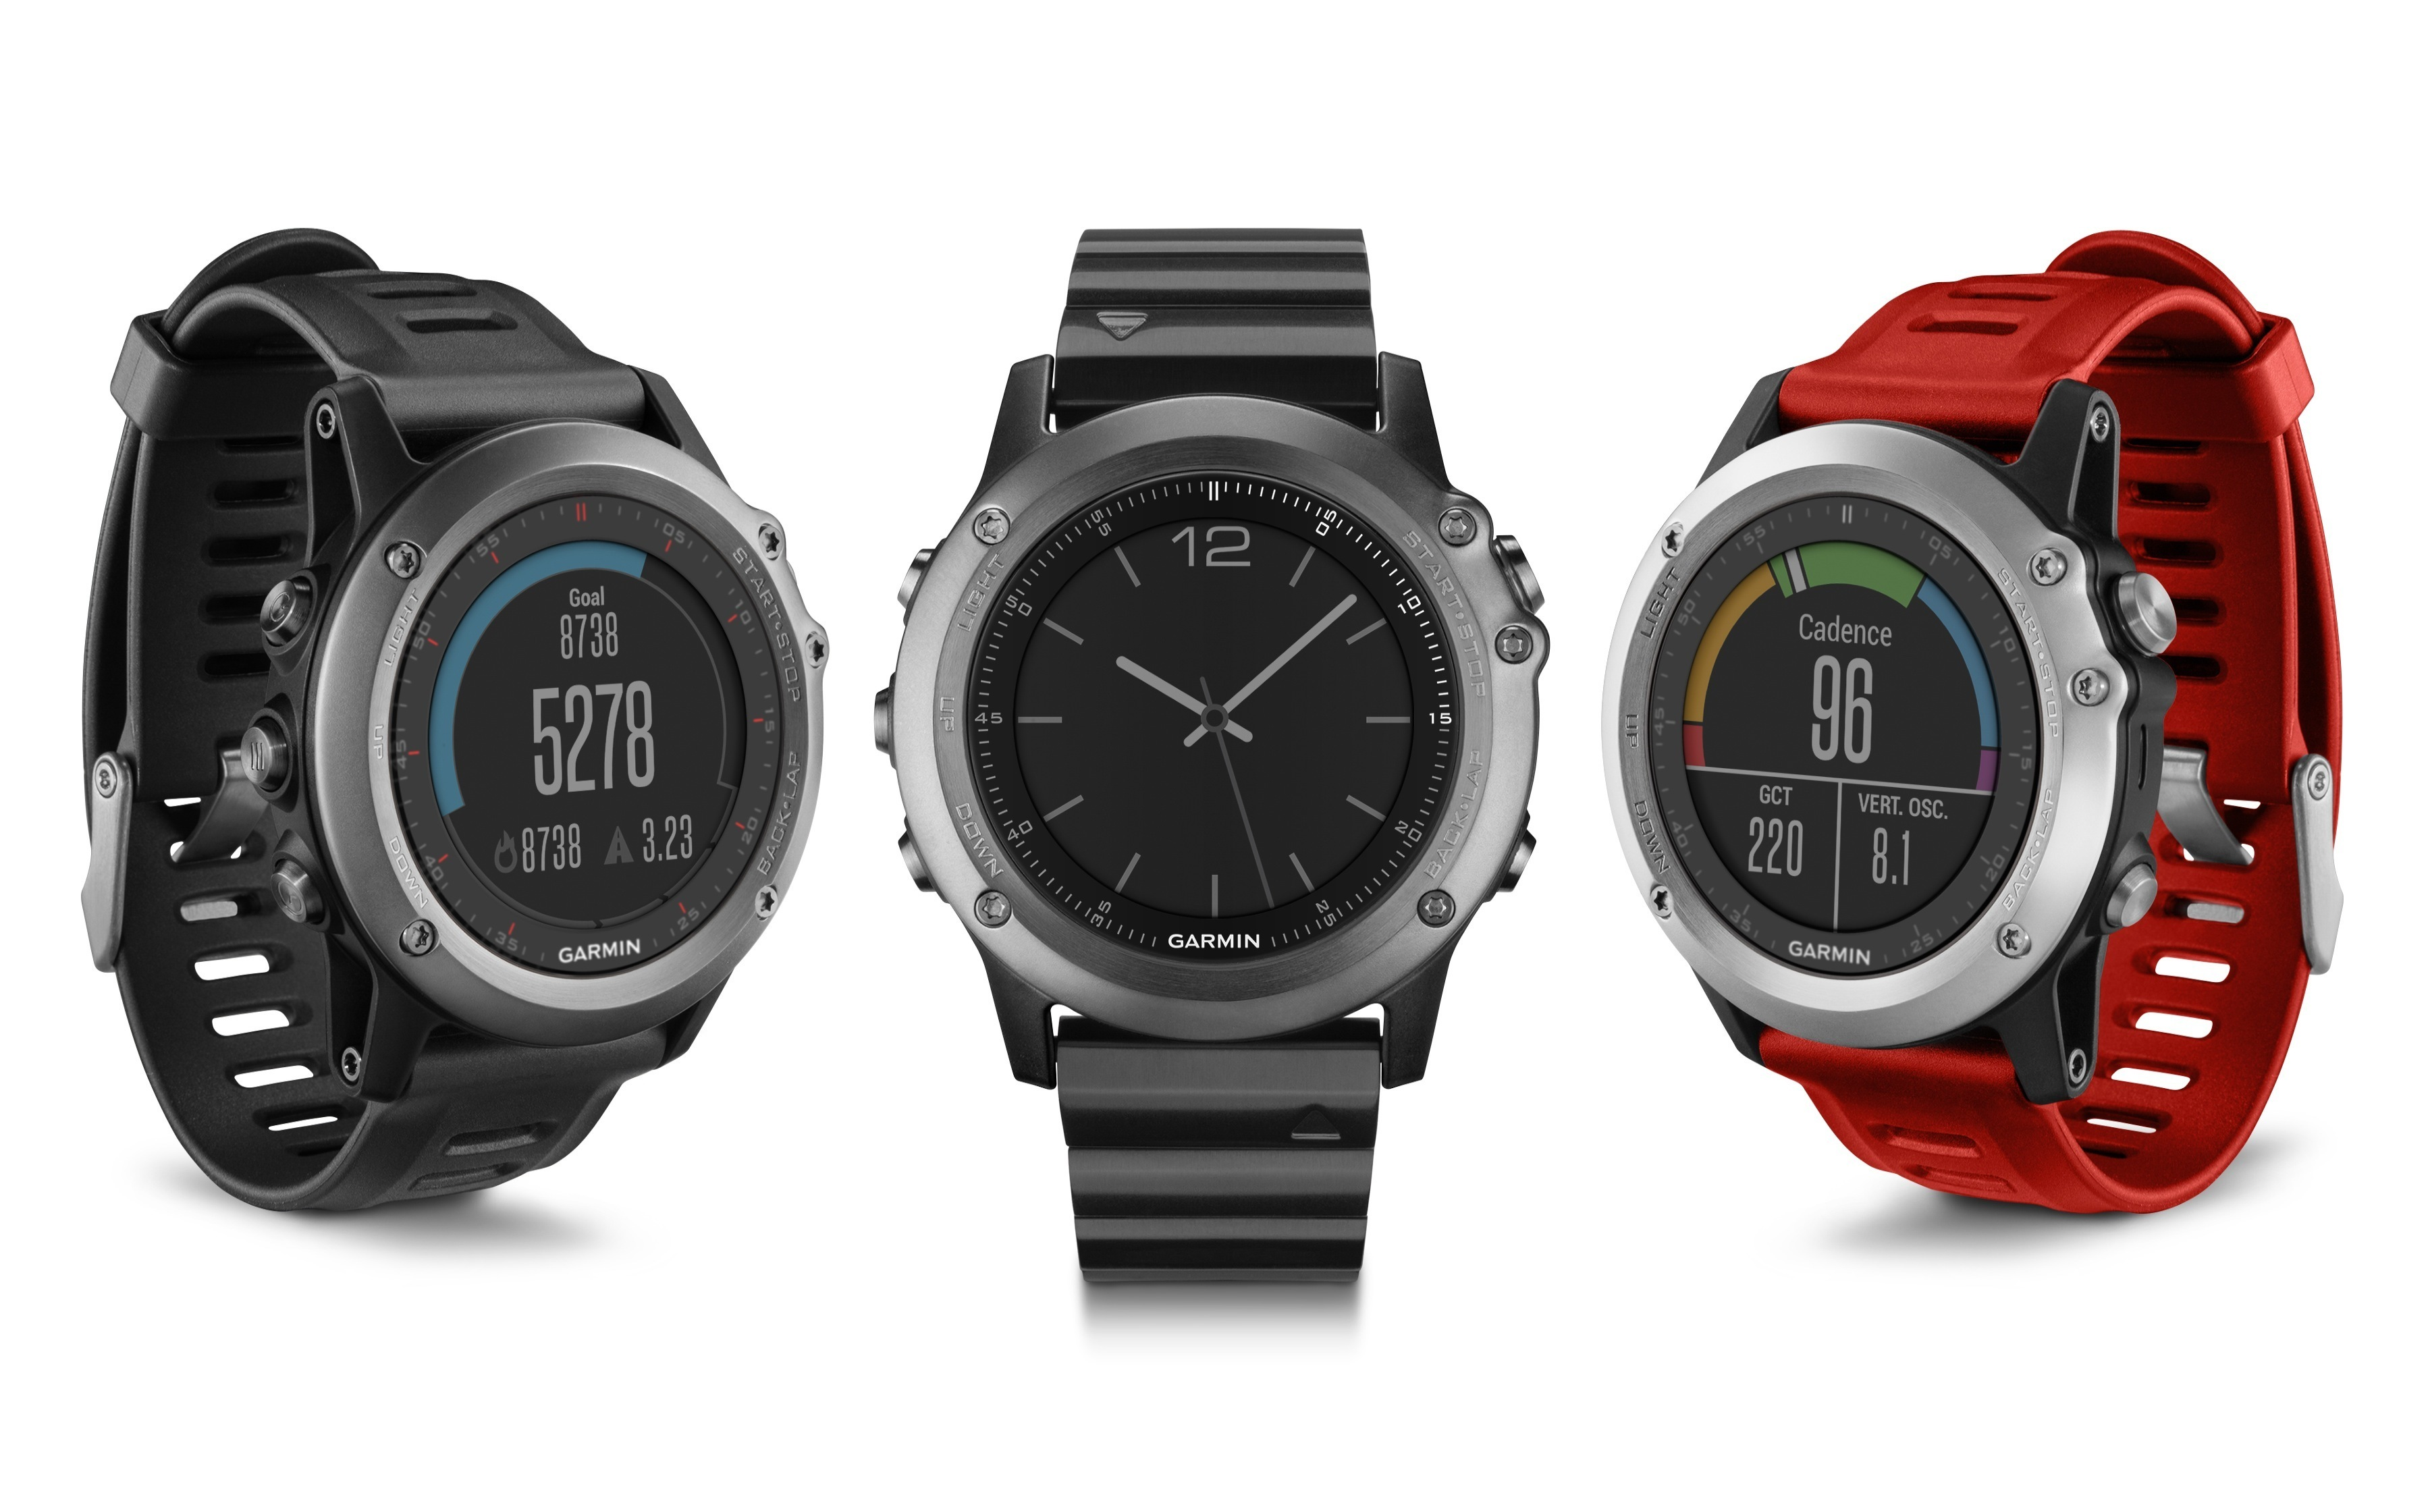 Is A Garmin Going To Be Your Next Smartwatch? CES 2015 Watch Lineup Looks Strong | aBlogtoWatch